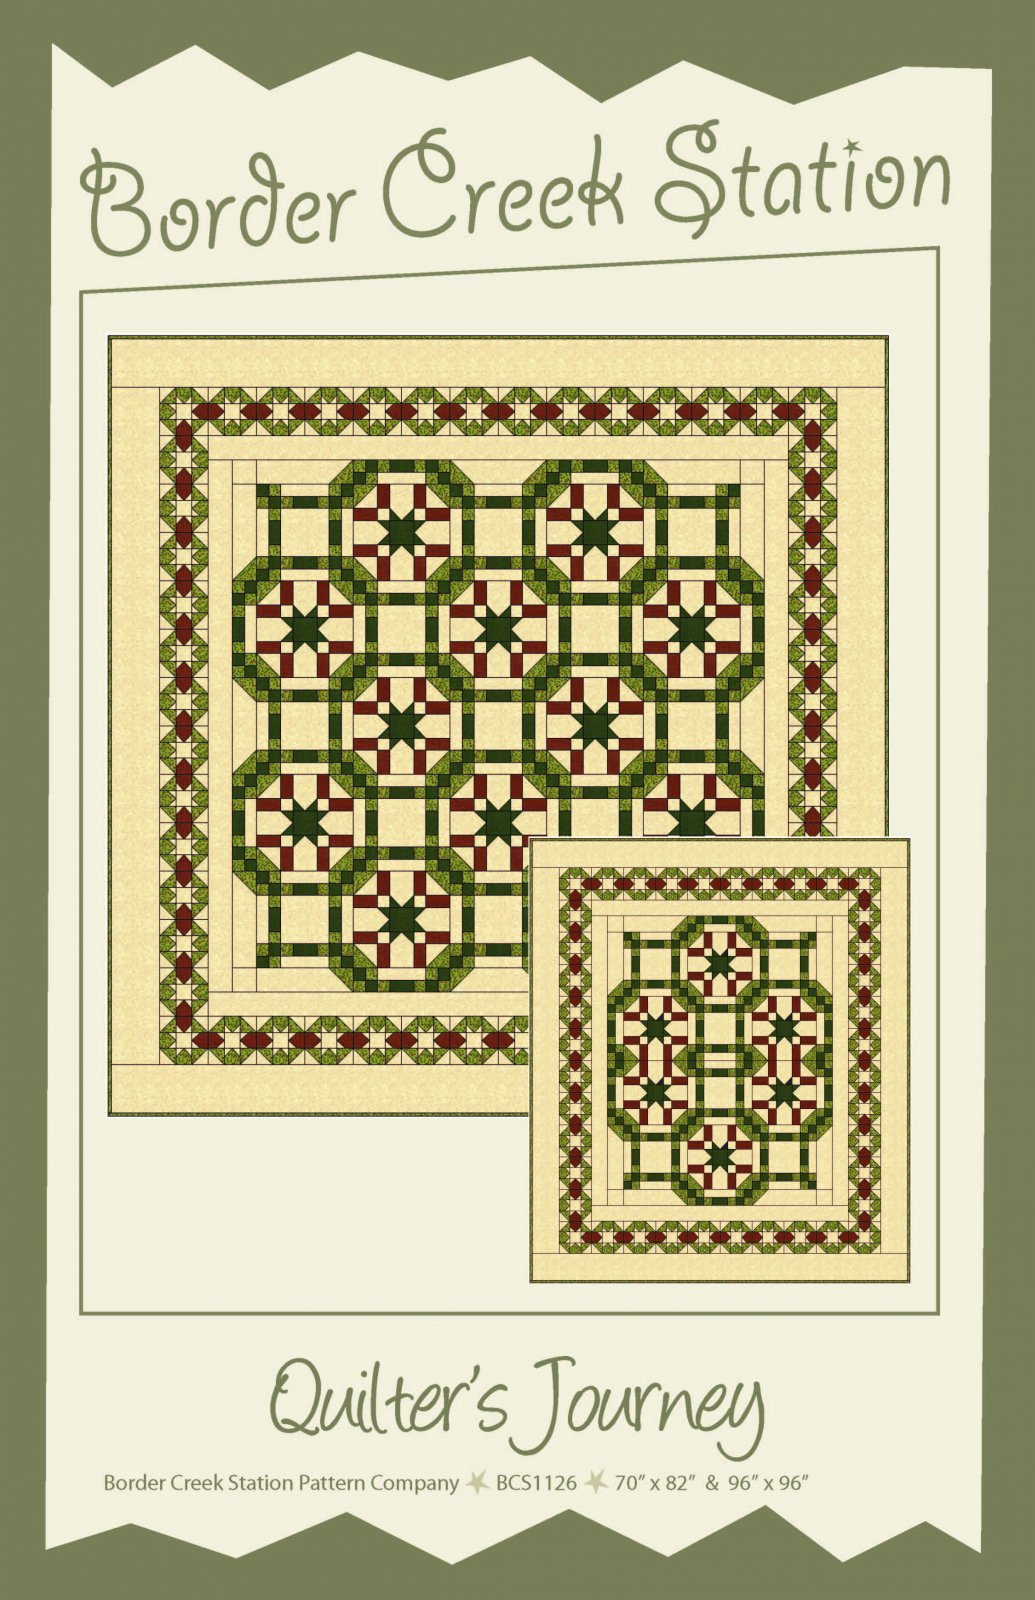 Quilter's Journey